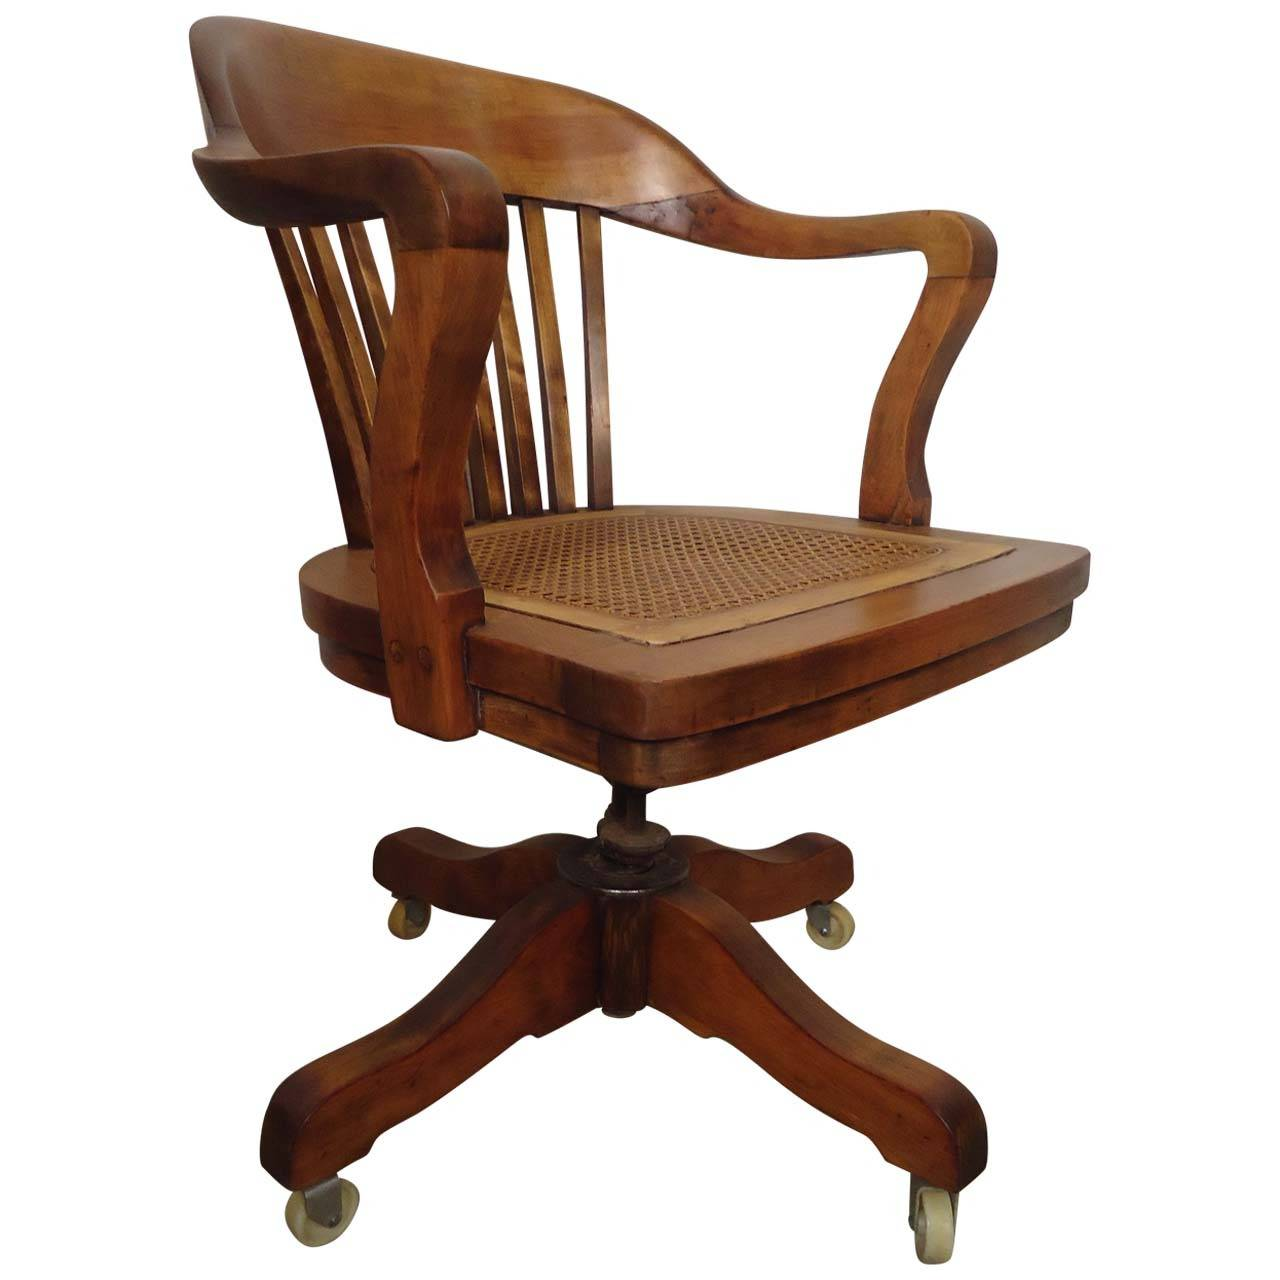 restored vintage swivel desk chair by page 1 office chairs for sale